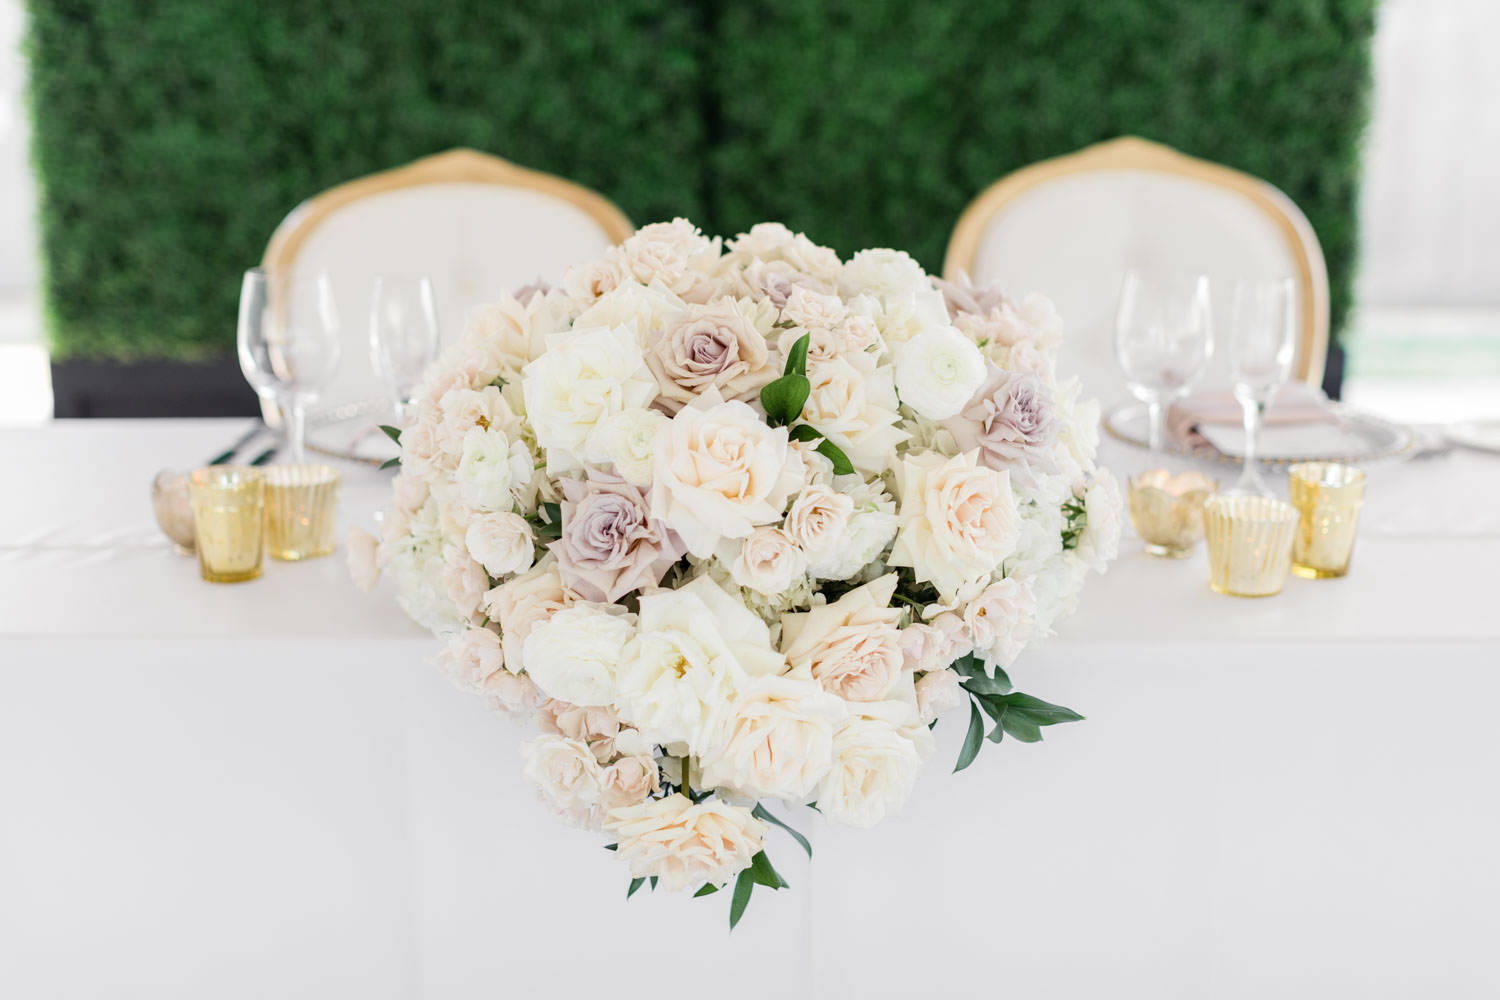 Sweetheart table with white lavender and green arrangement at Santaluz Club, Cavin Elizabeth Photography